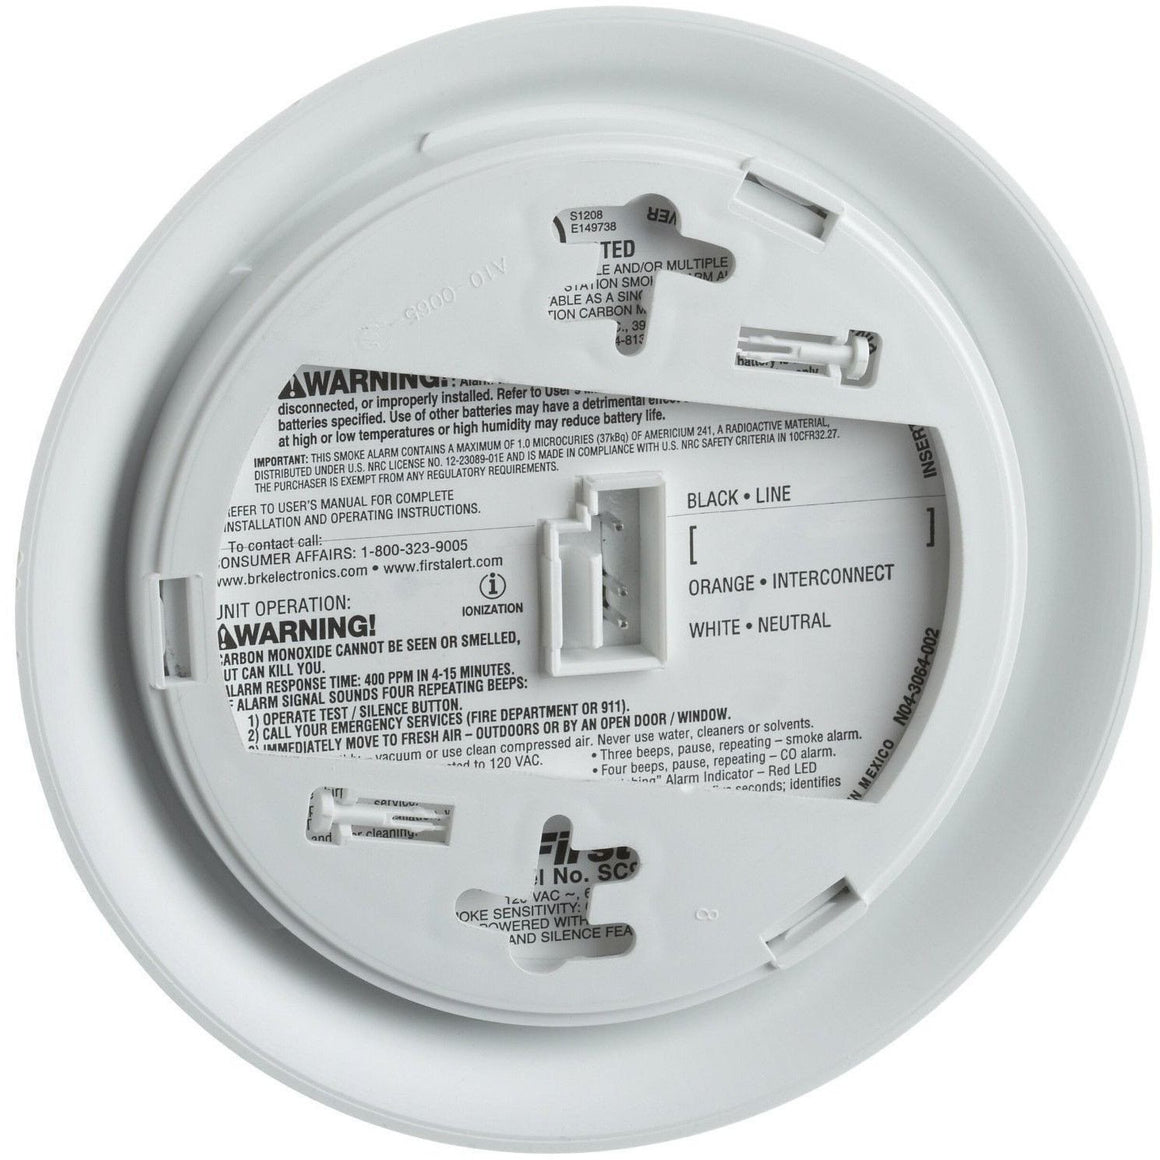 BRK First Alert - SC9120B Hardwired Smoke & Carbon Monoxide Alarm - Wholesale Home Improvement Products